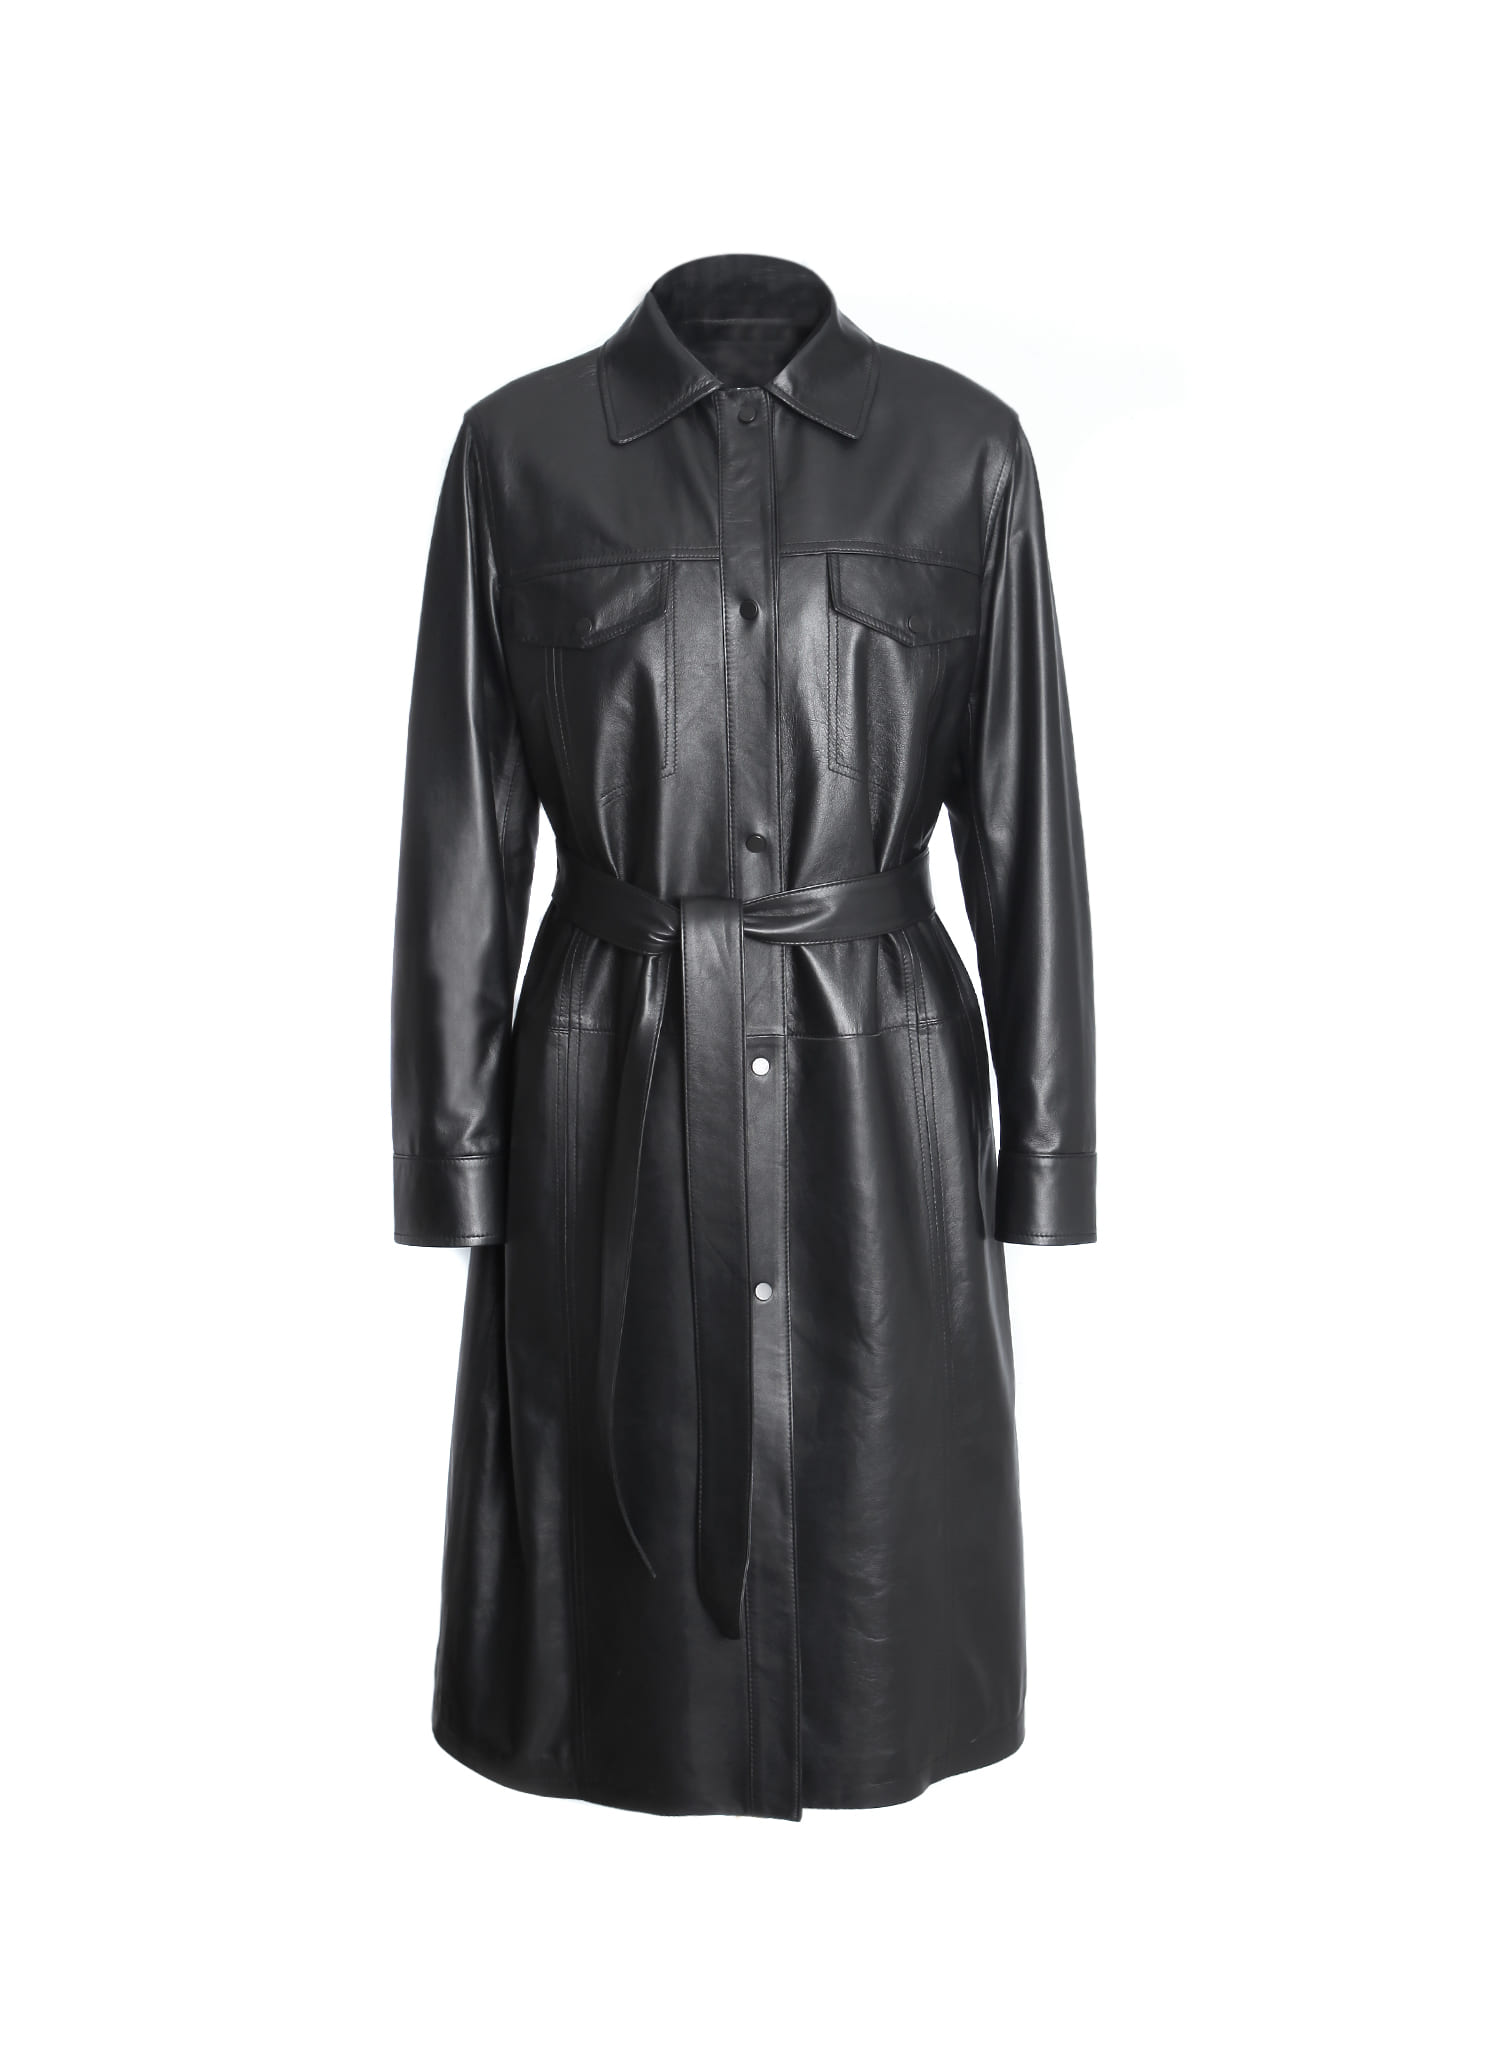 DECADENZA LEATHER COAT / BLACK